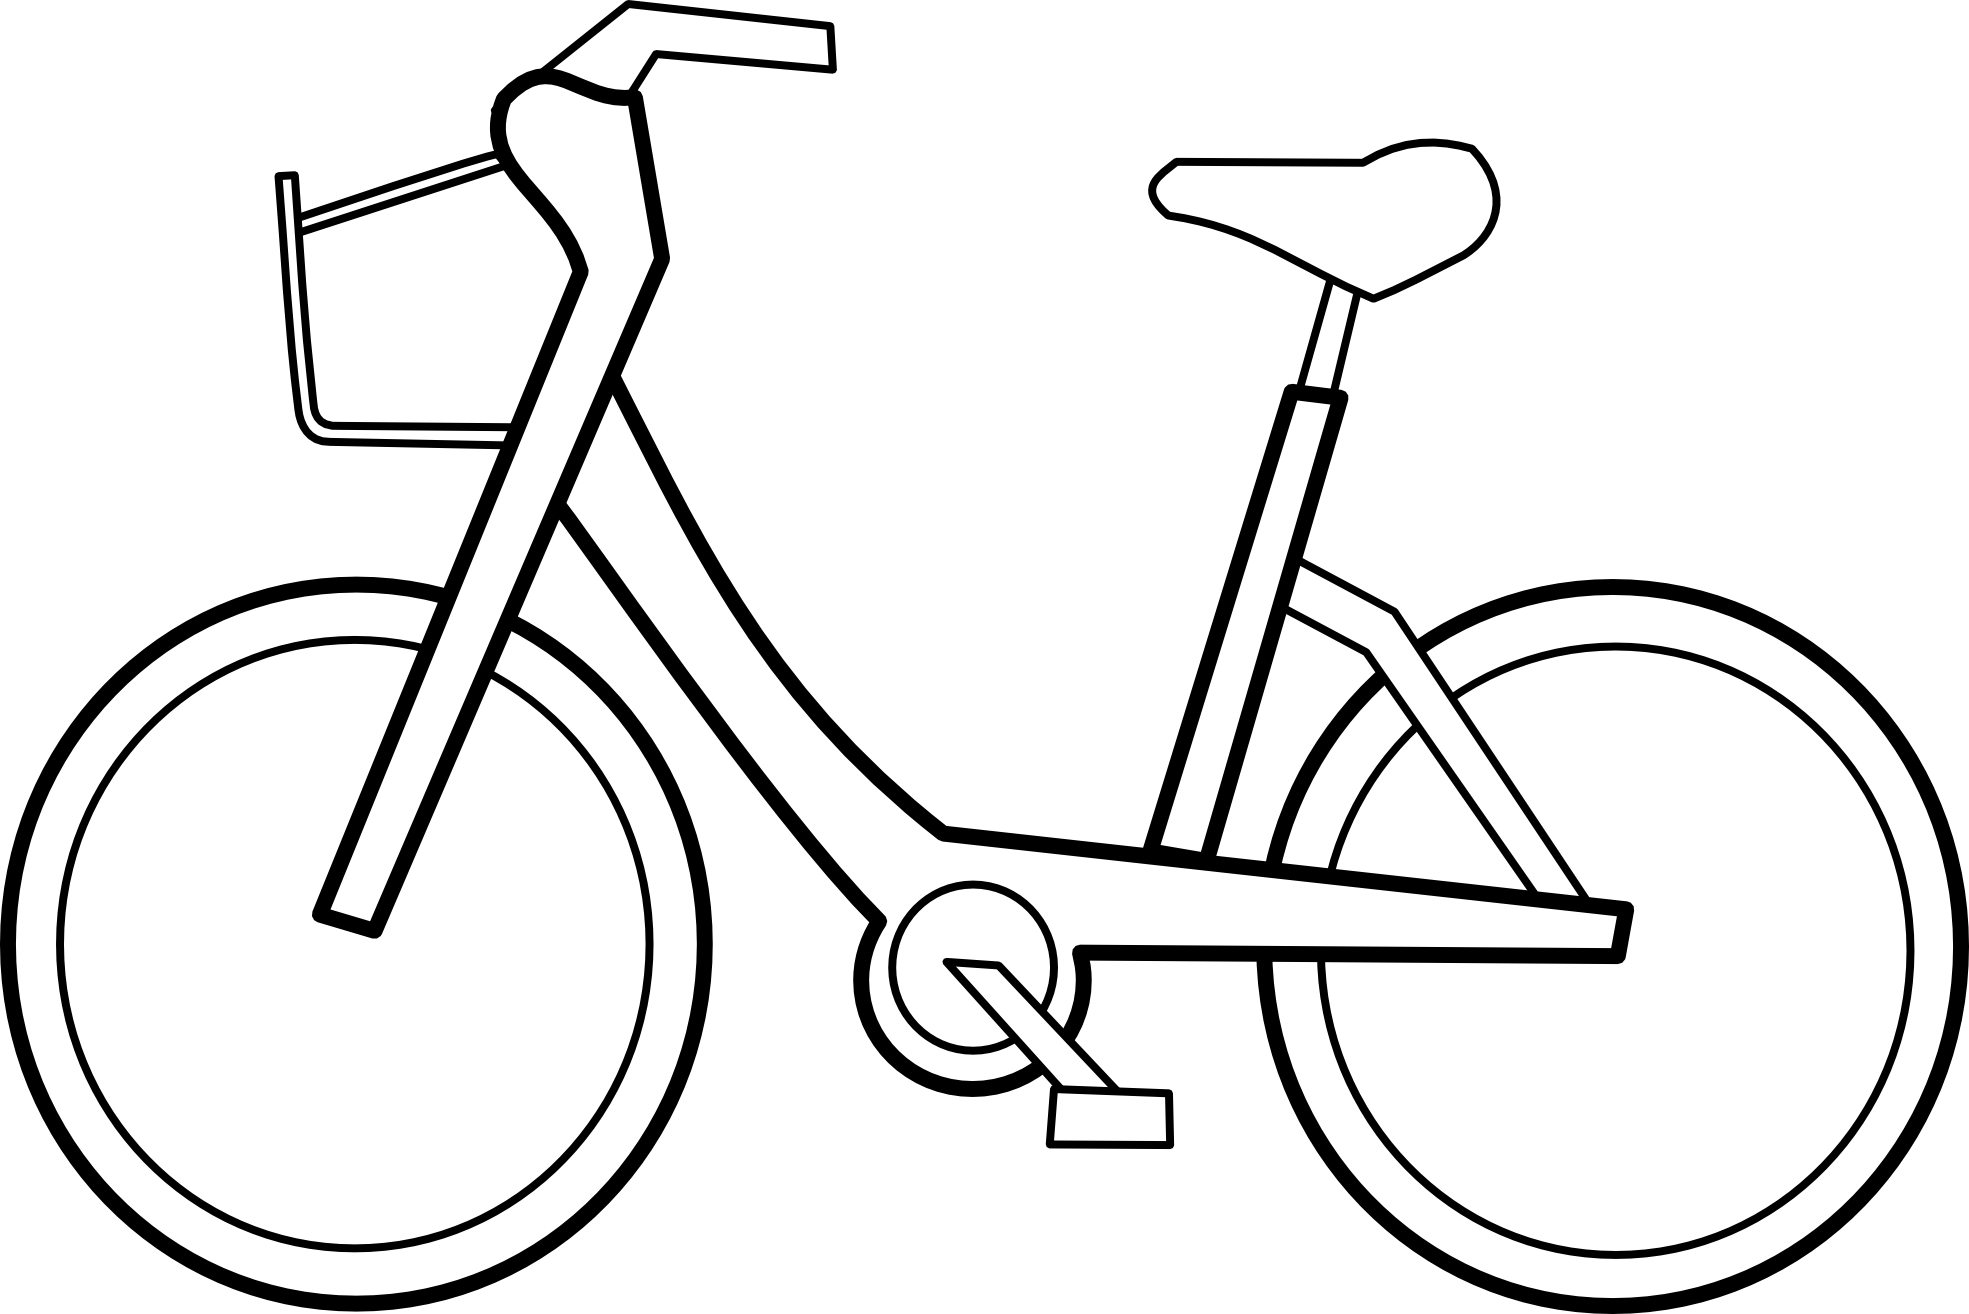 bike images june. Cycle clipart child